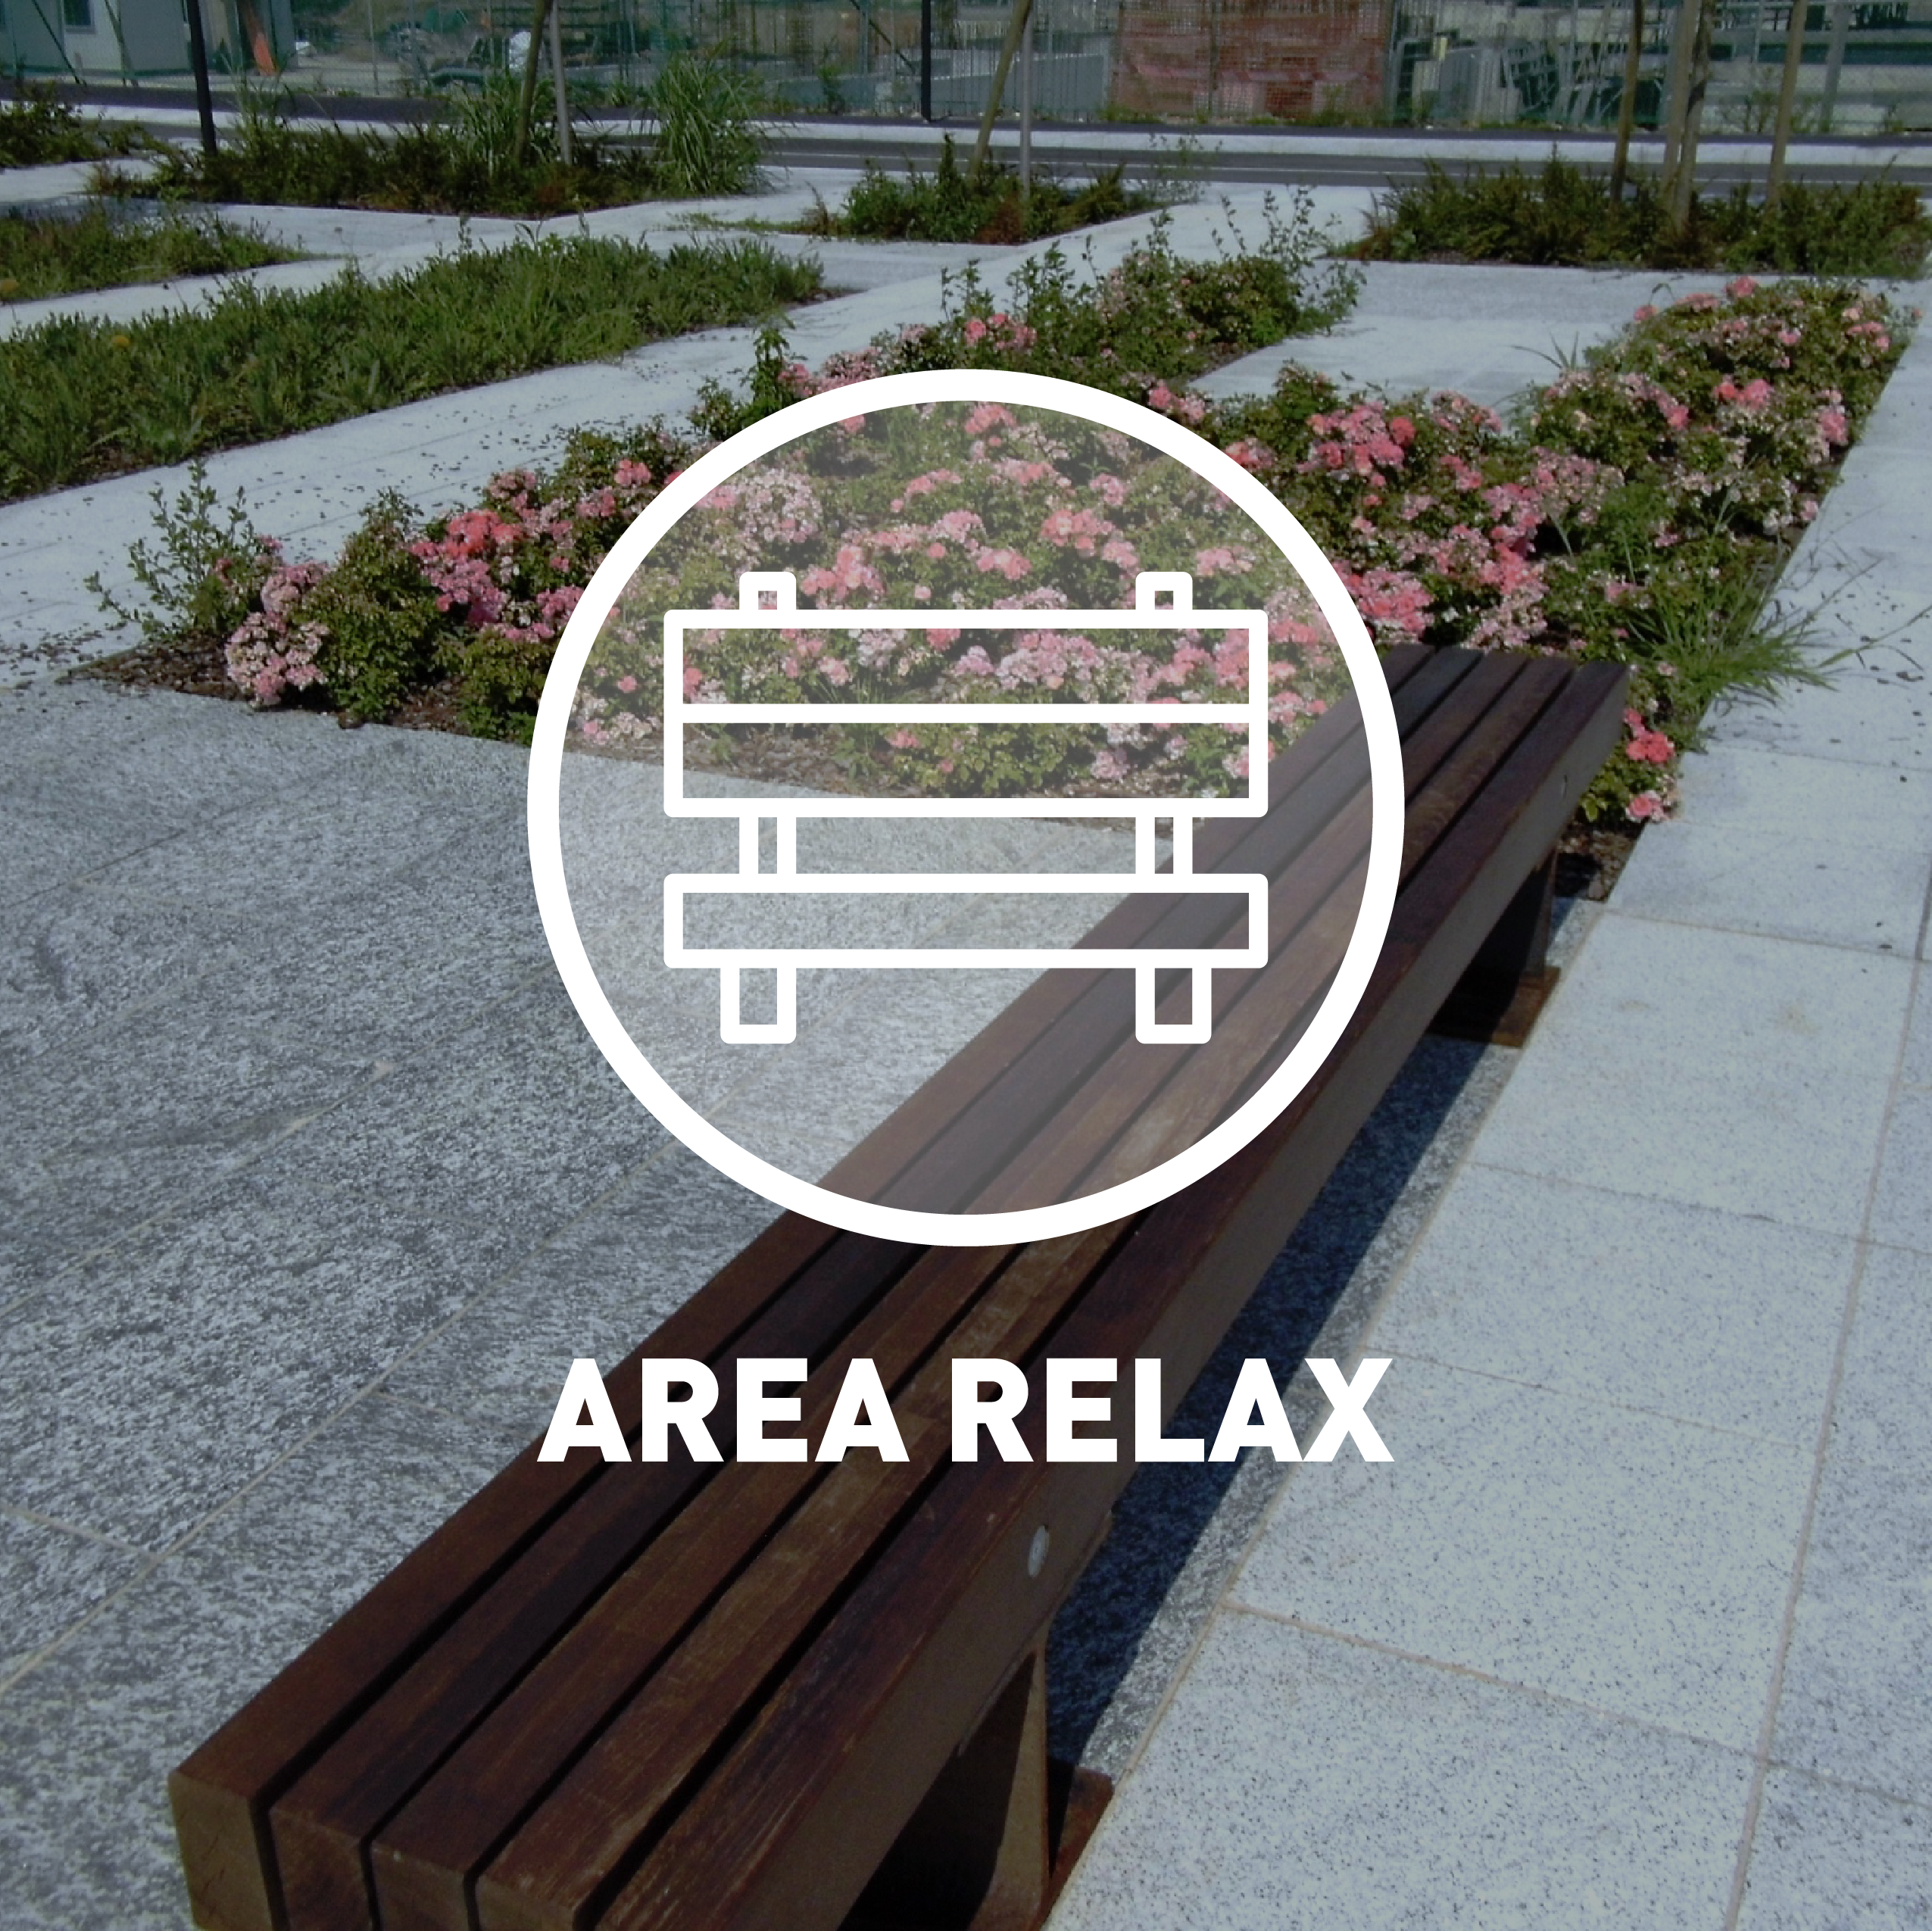 AREA RELAX